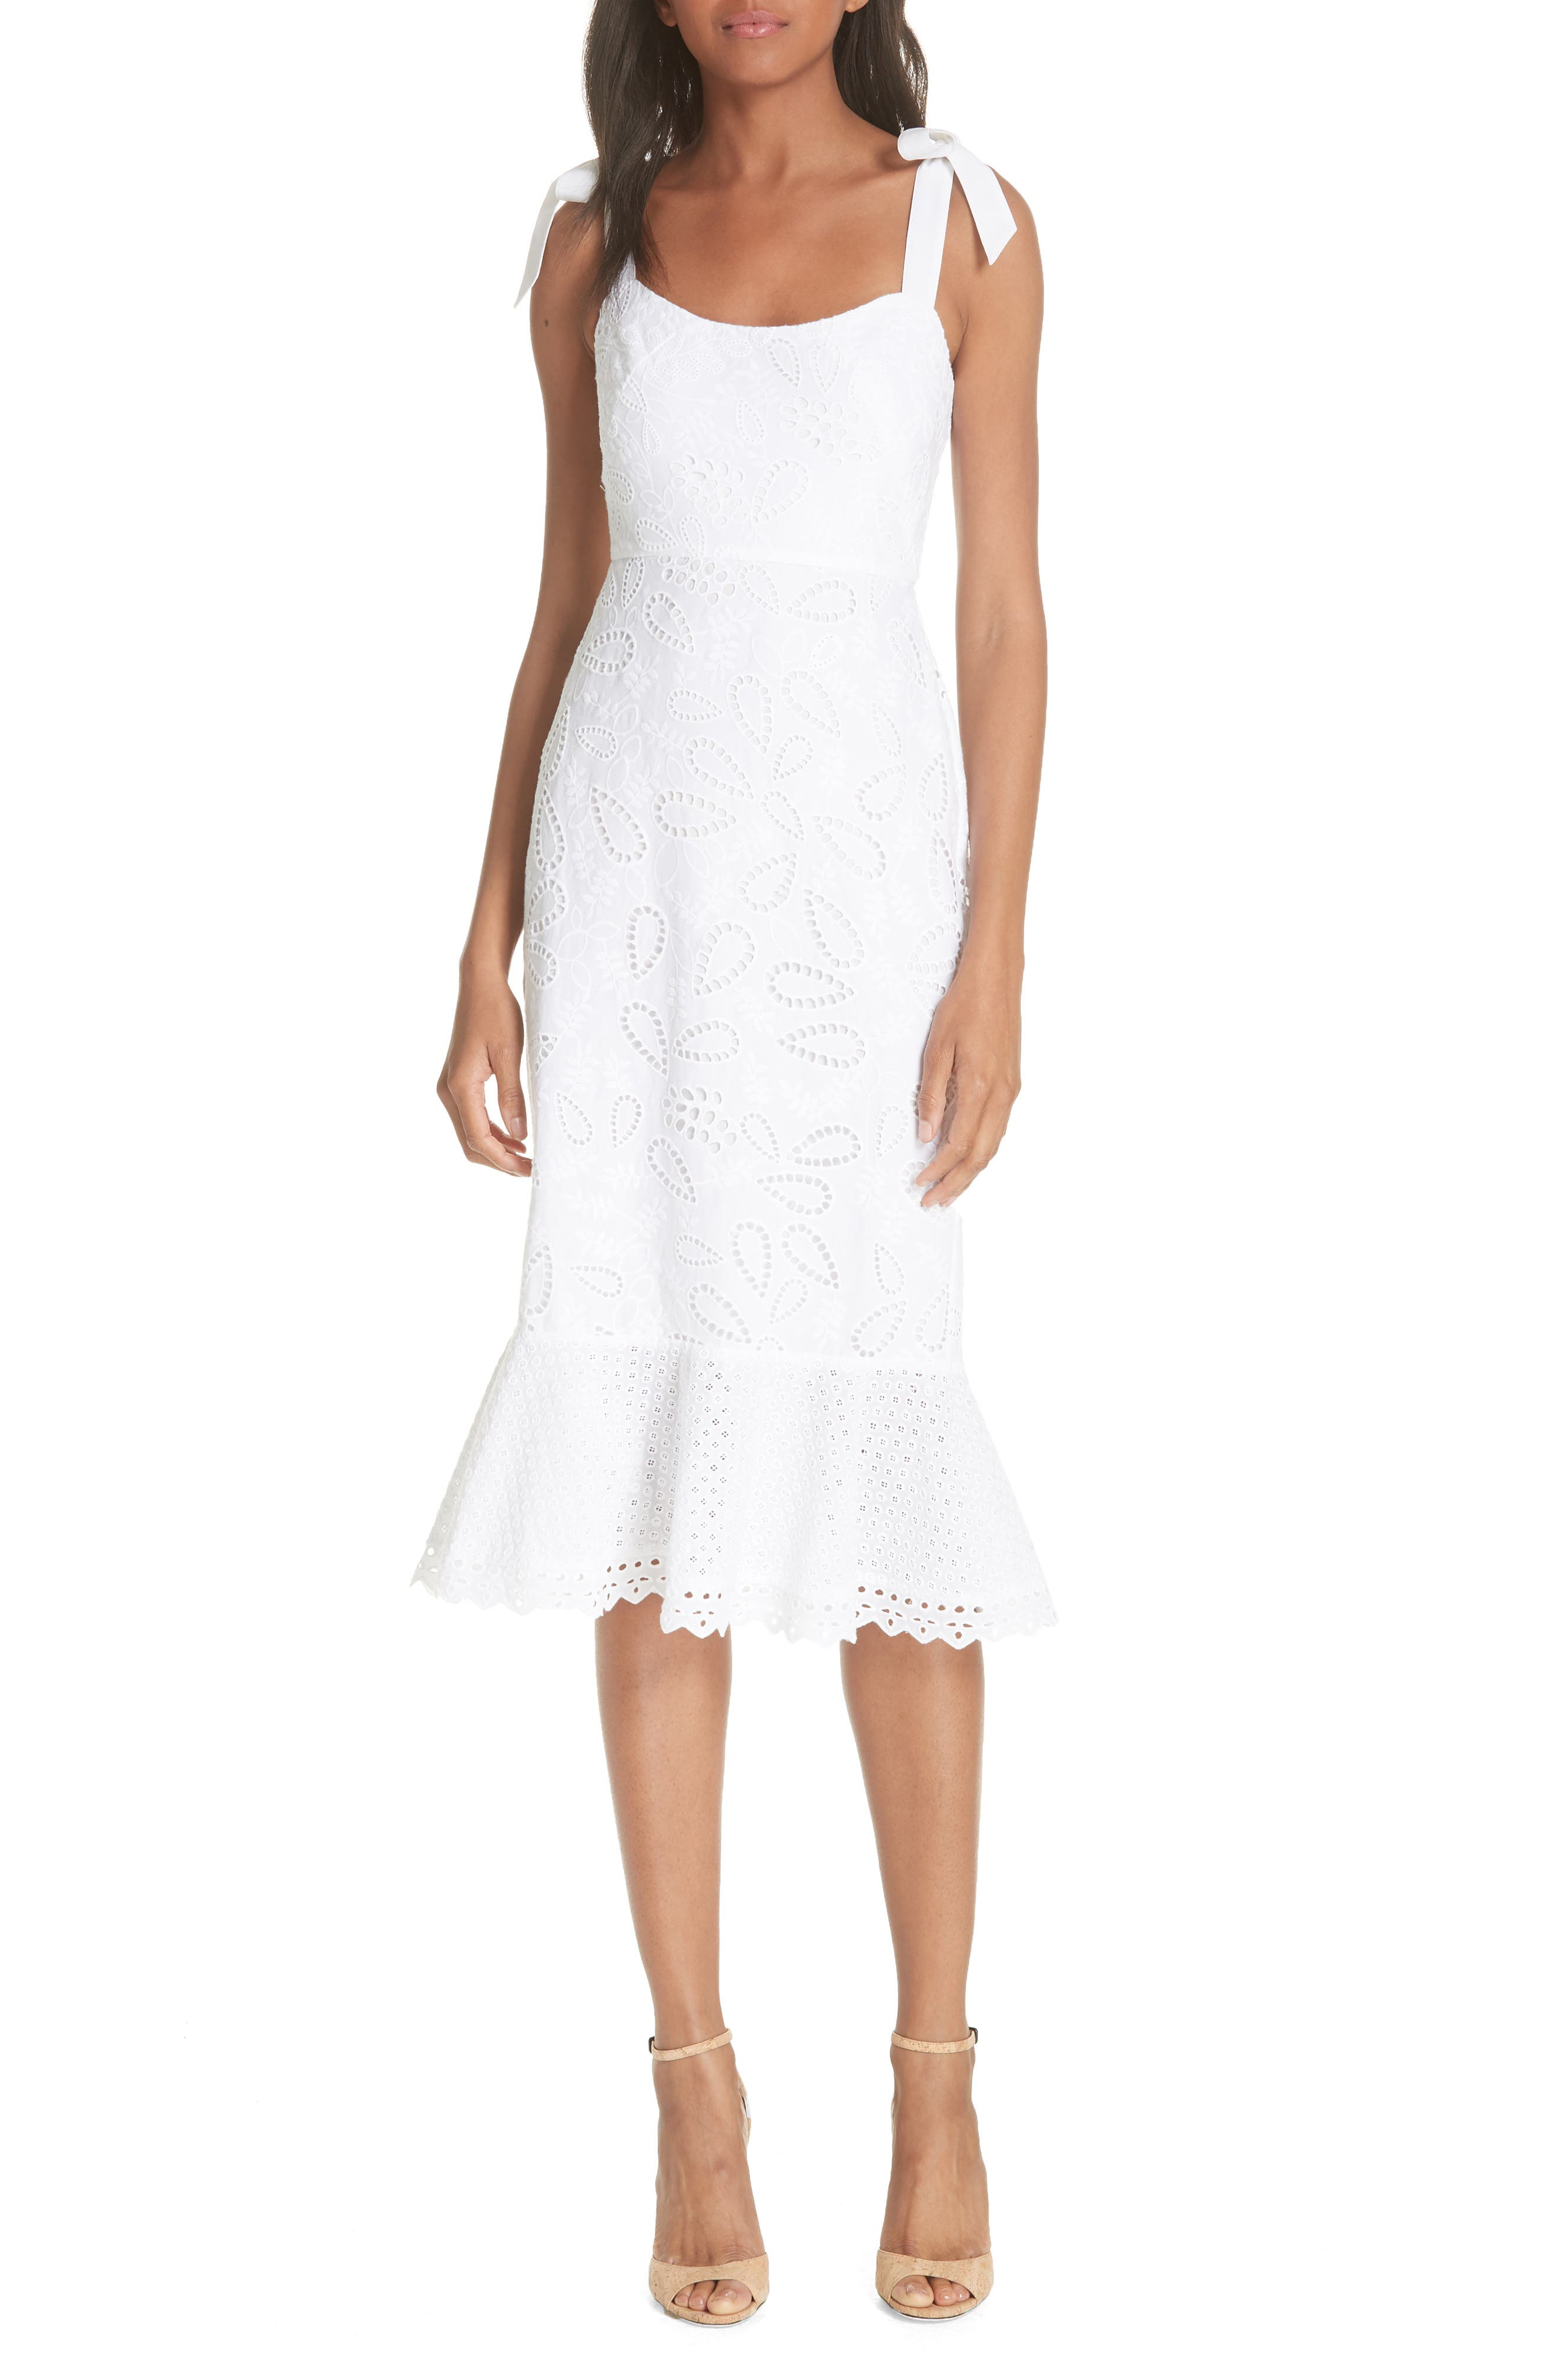 SALONI Rosie Eyelet Dress, Main, color, 101